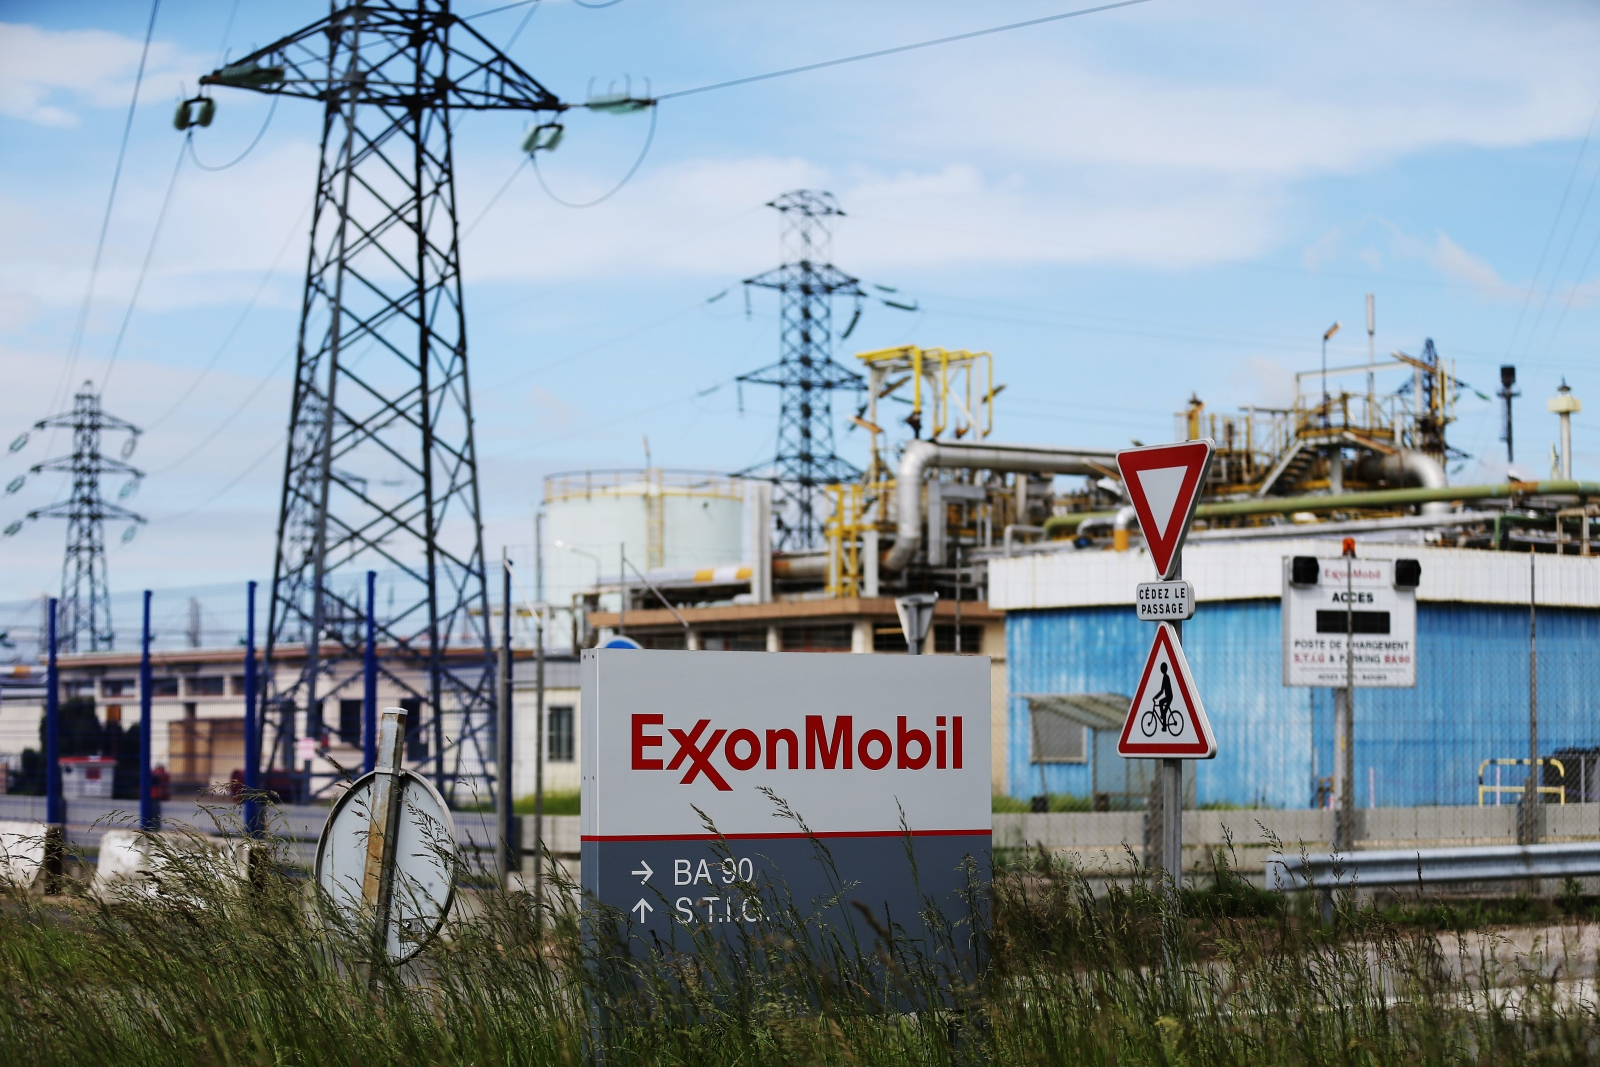 ExxonMobil bids $2.2 bln for InterOil, may spark bidding war